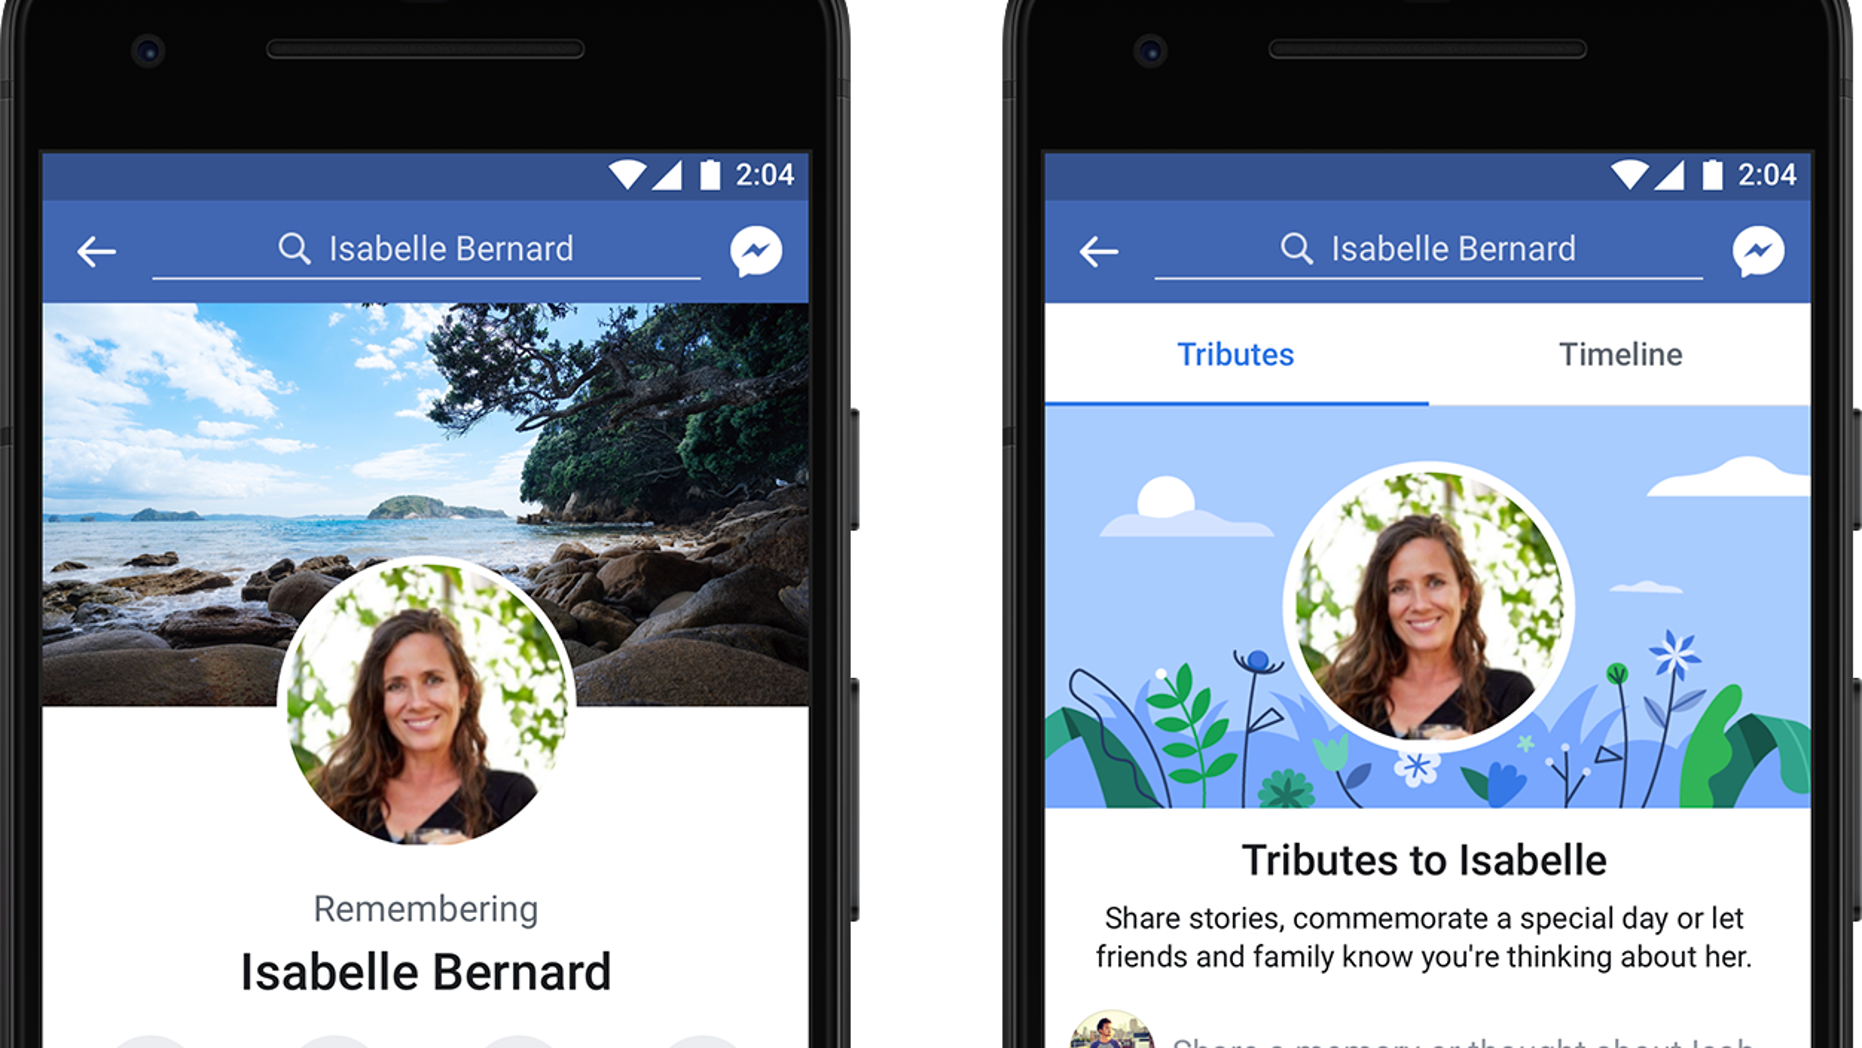 Facebook said it will use artificial intelligence to stop sending birthday reminders on behalf of the deceased.